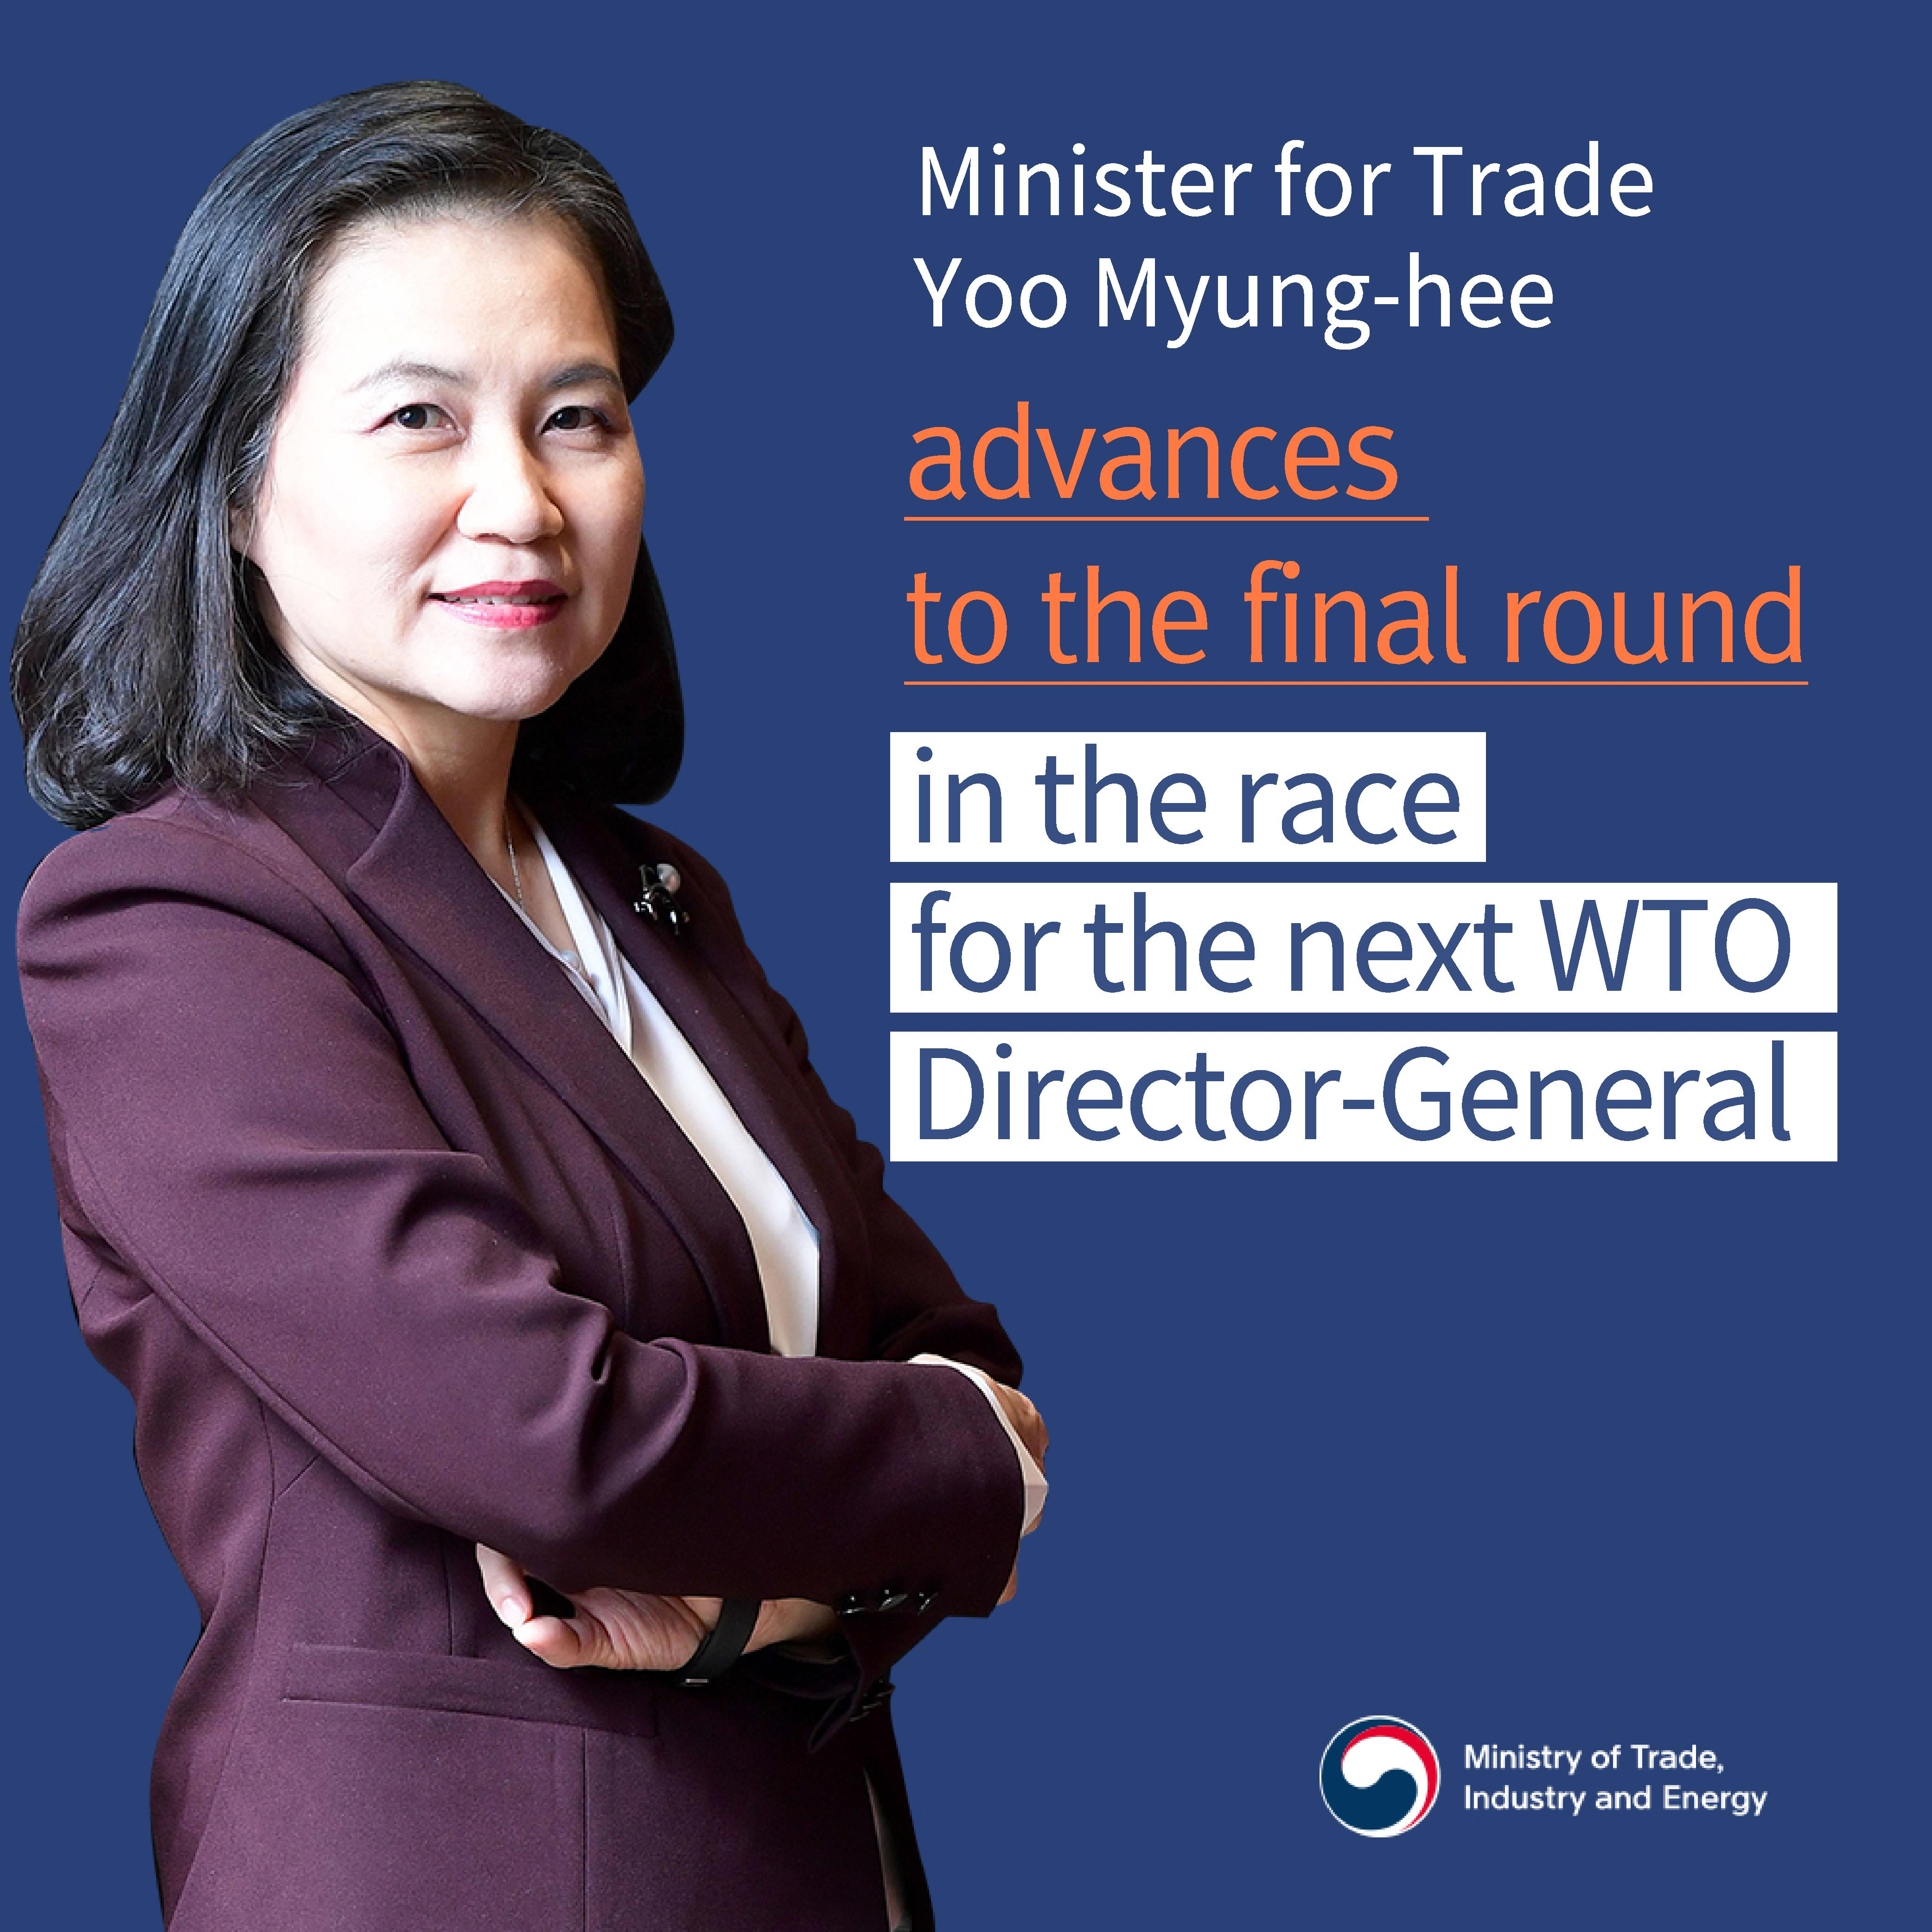 Trade Minister Yoo Myung-hee advances to the final round in the race for the next WTO DG